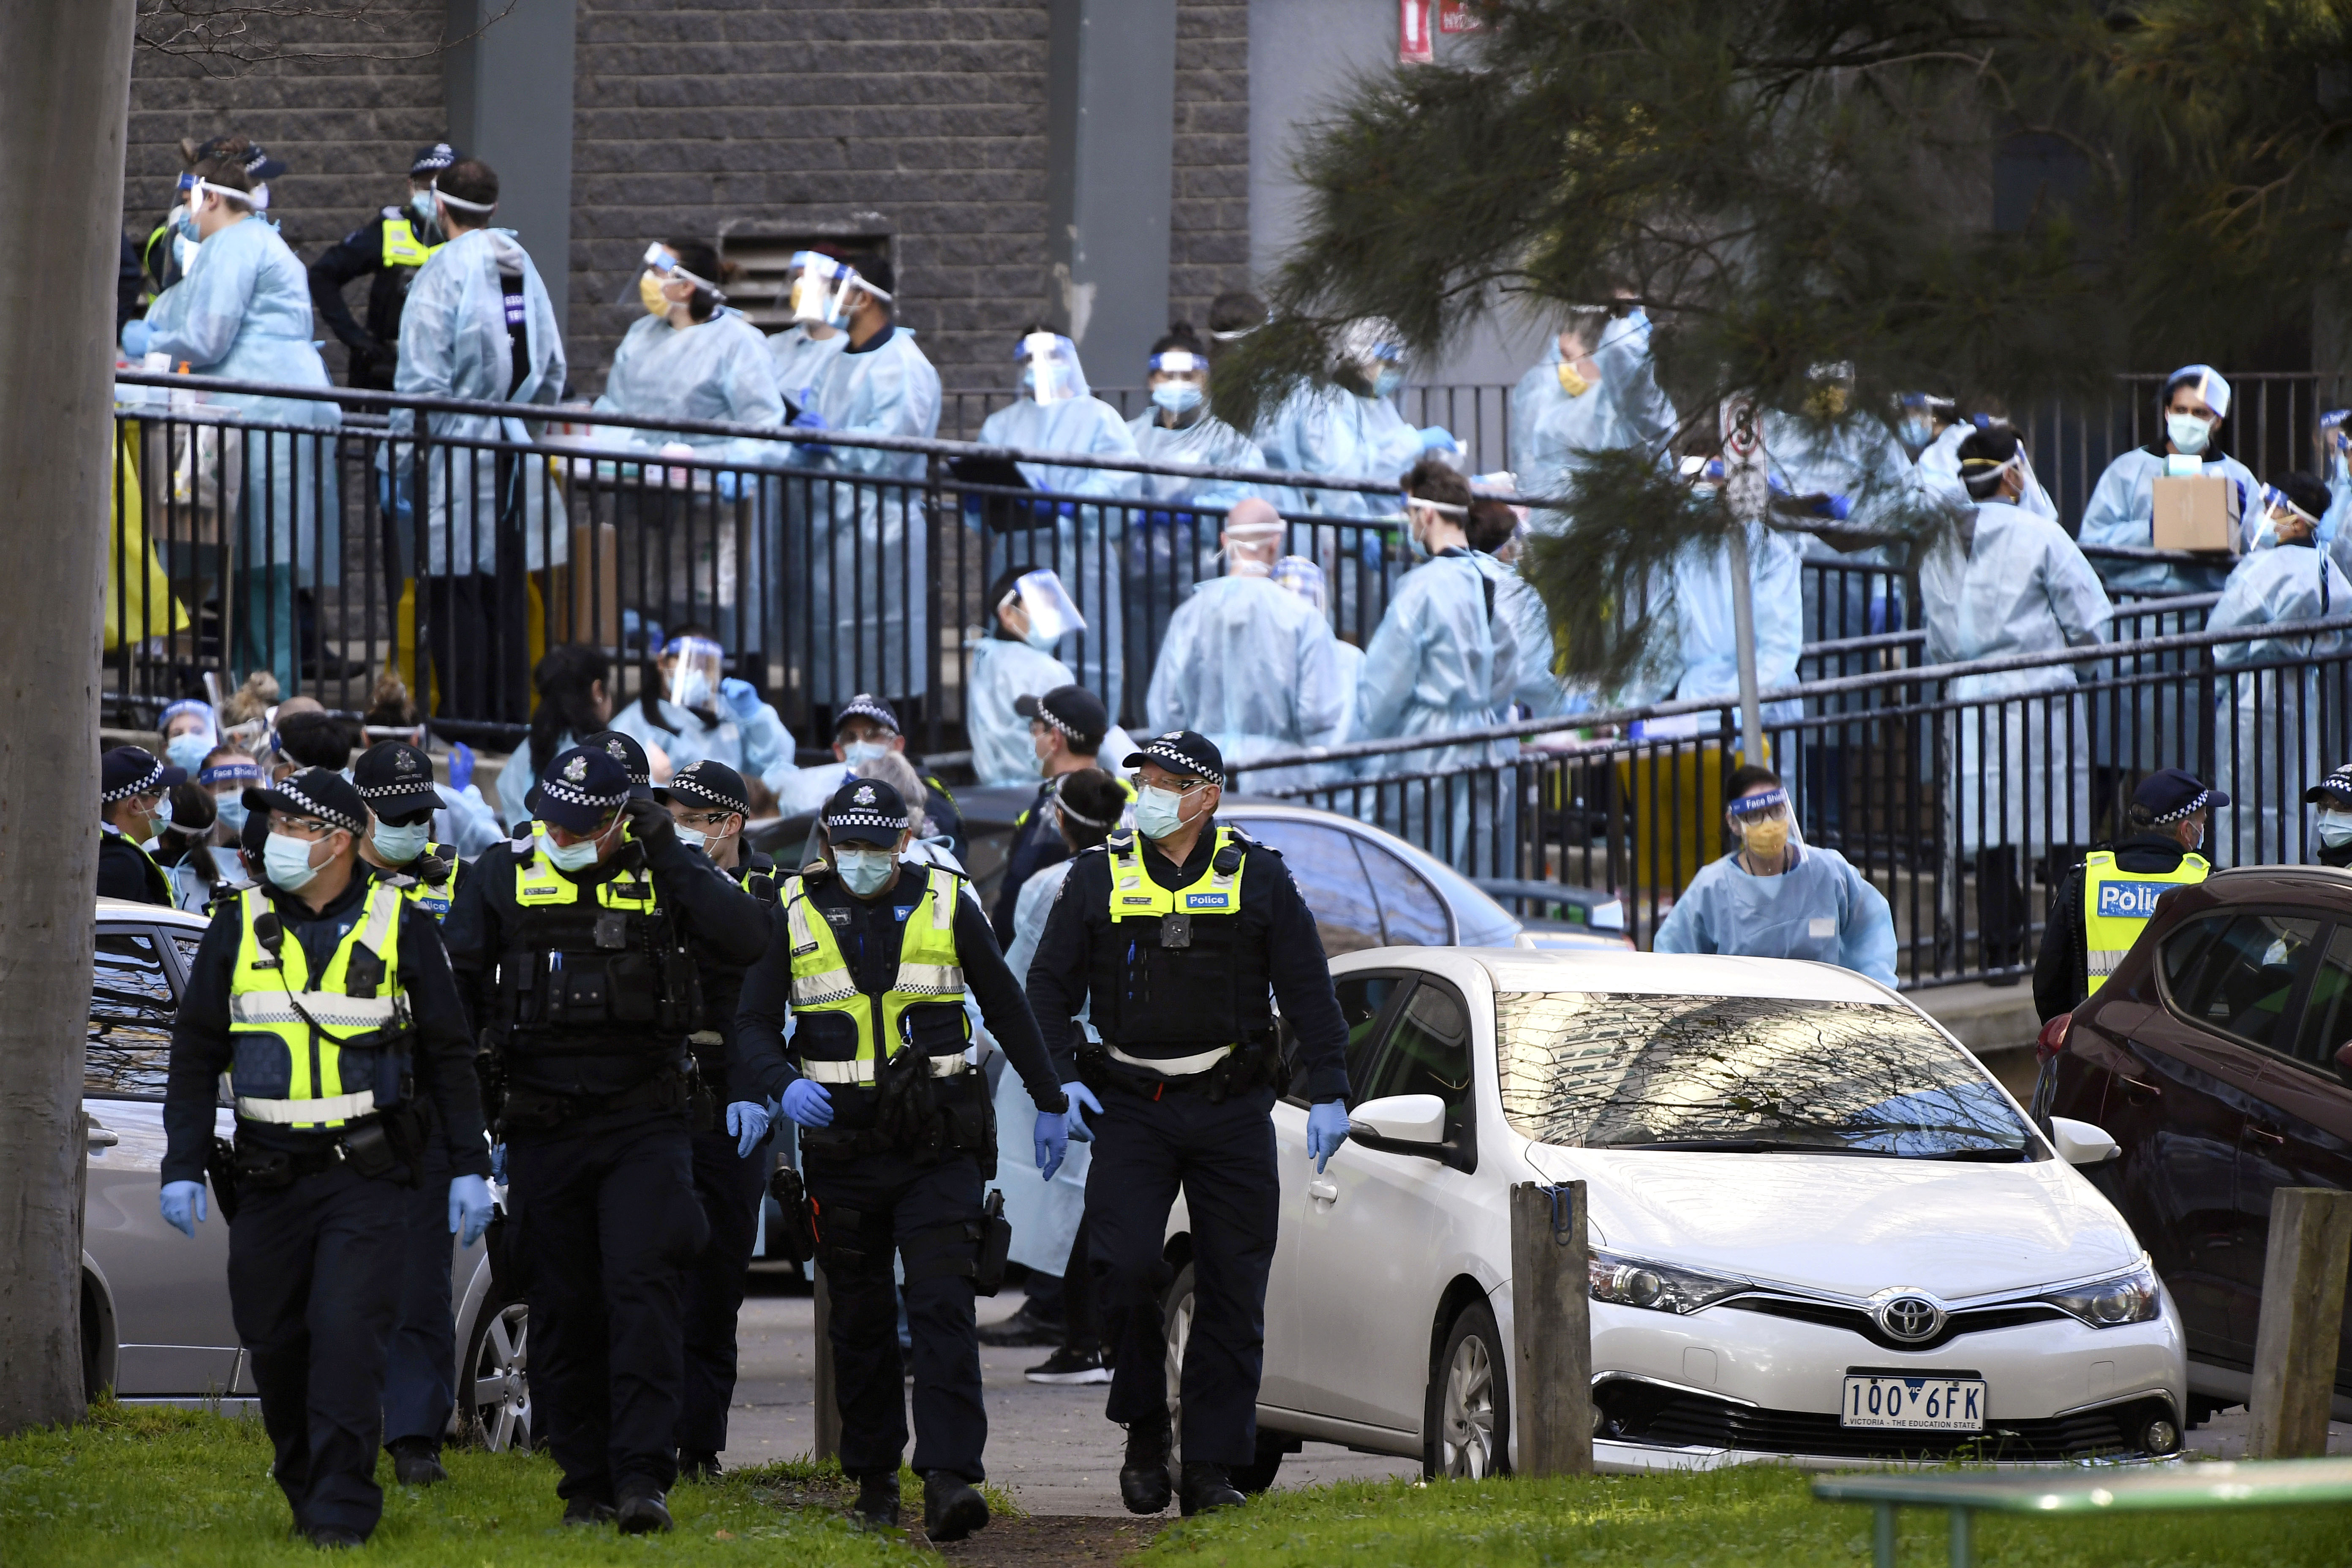 Police officers and health care workers are stationed outside a public housing tower that is locked down in Melbourne on July 8.